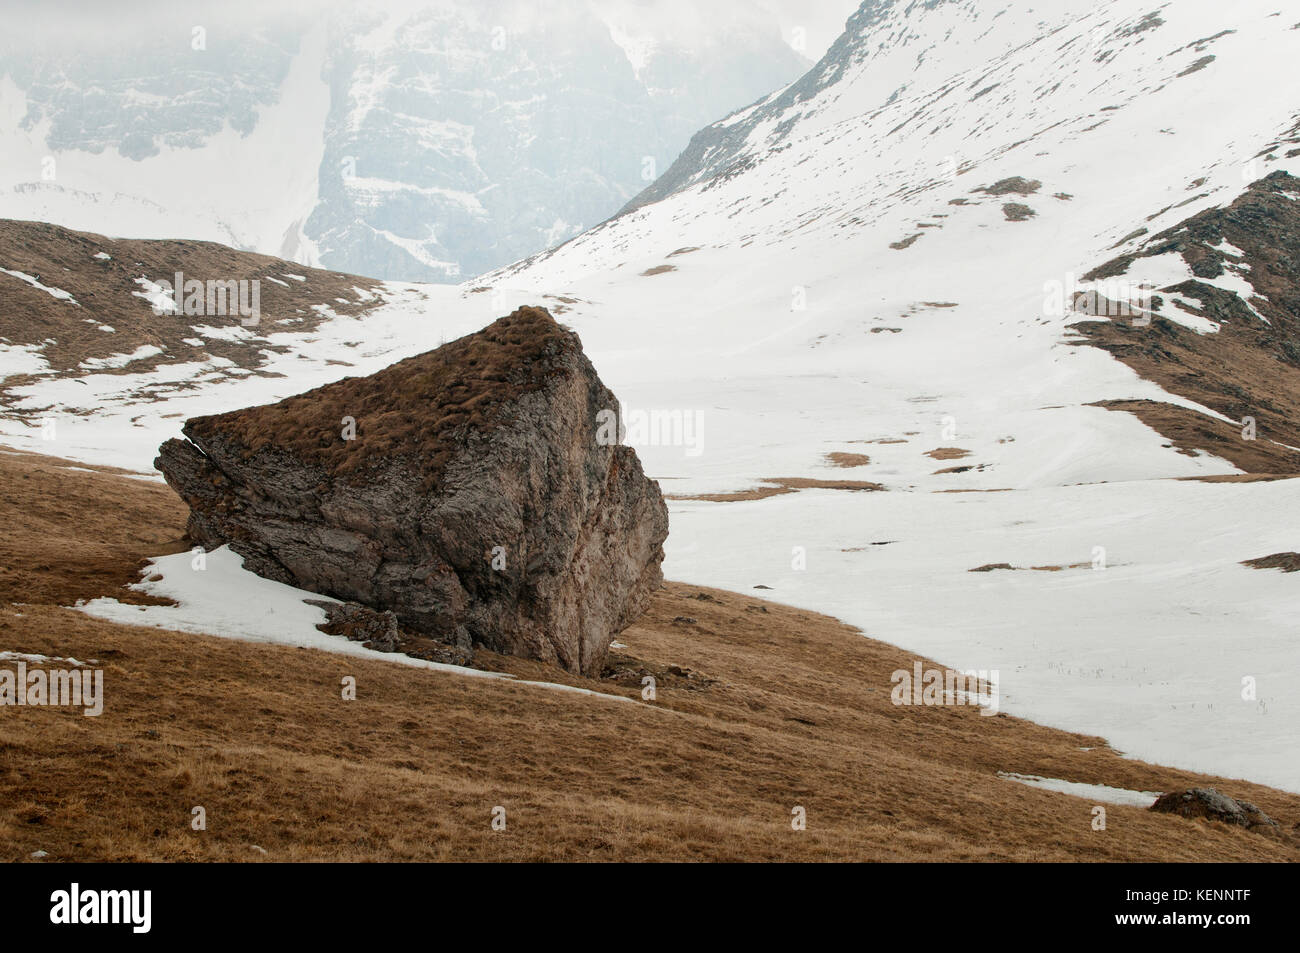 The Dolomiti of Cadore, Italy - Stock Image